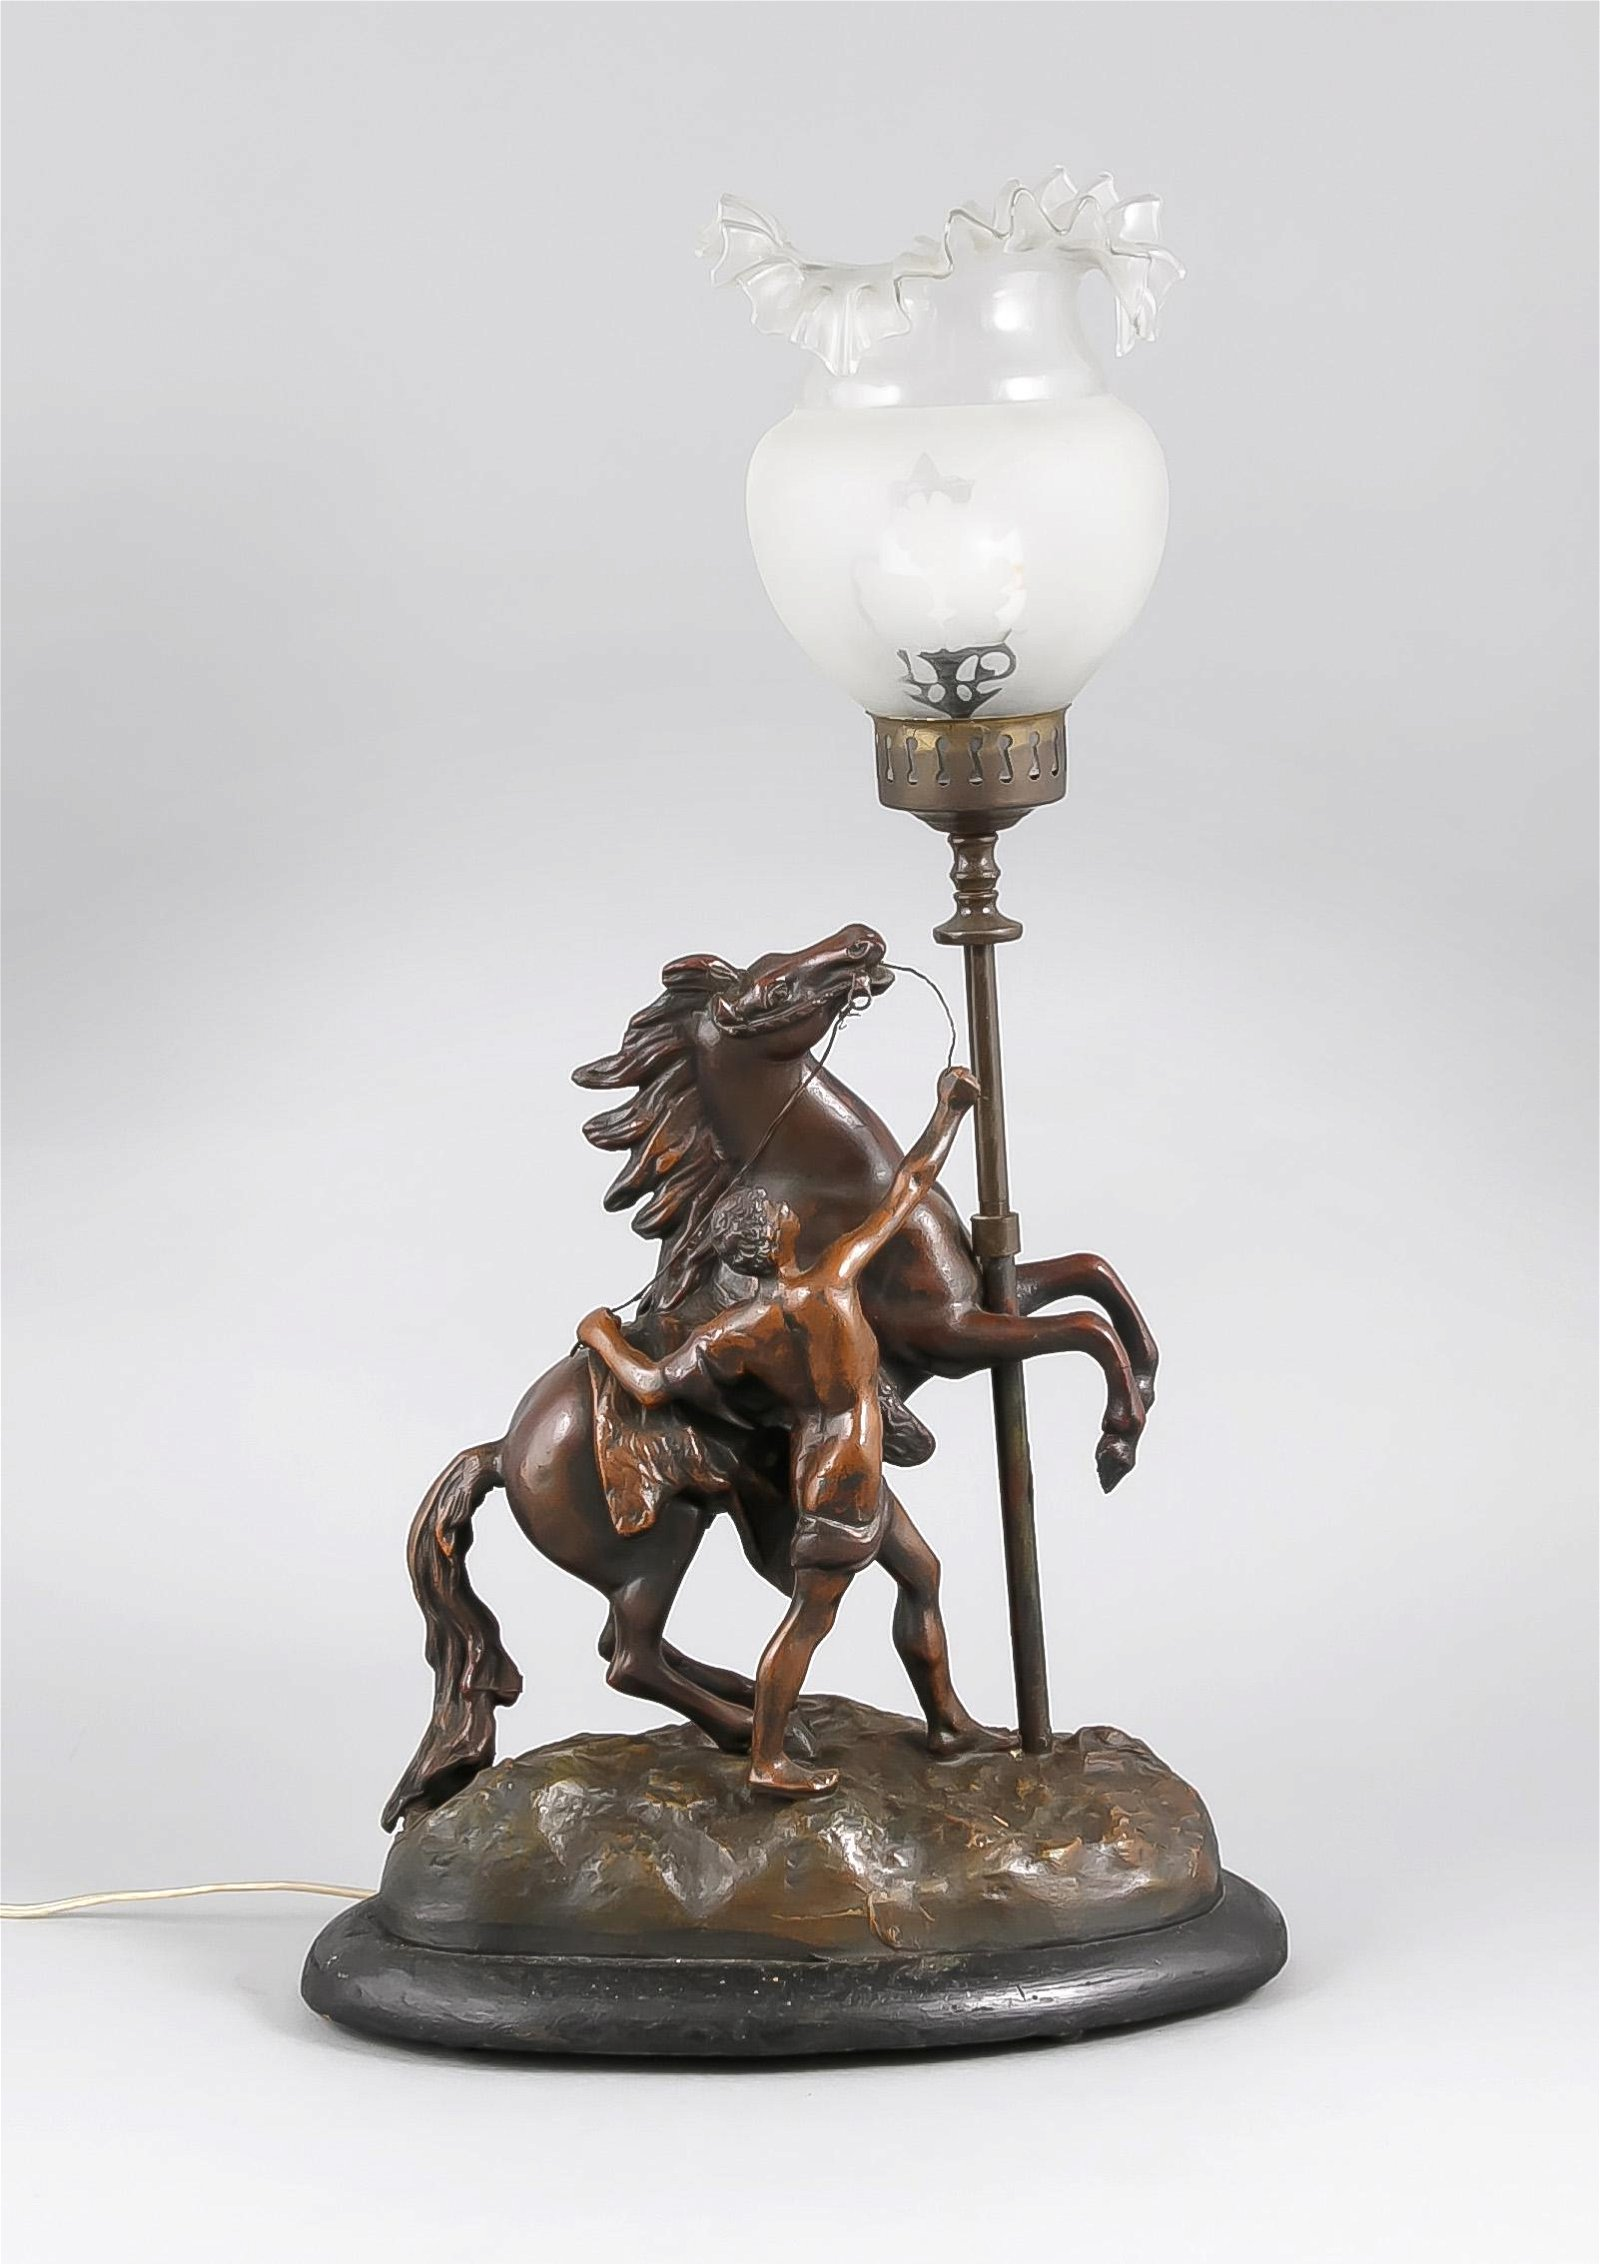 Antique French composition metal table lamp with horse